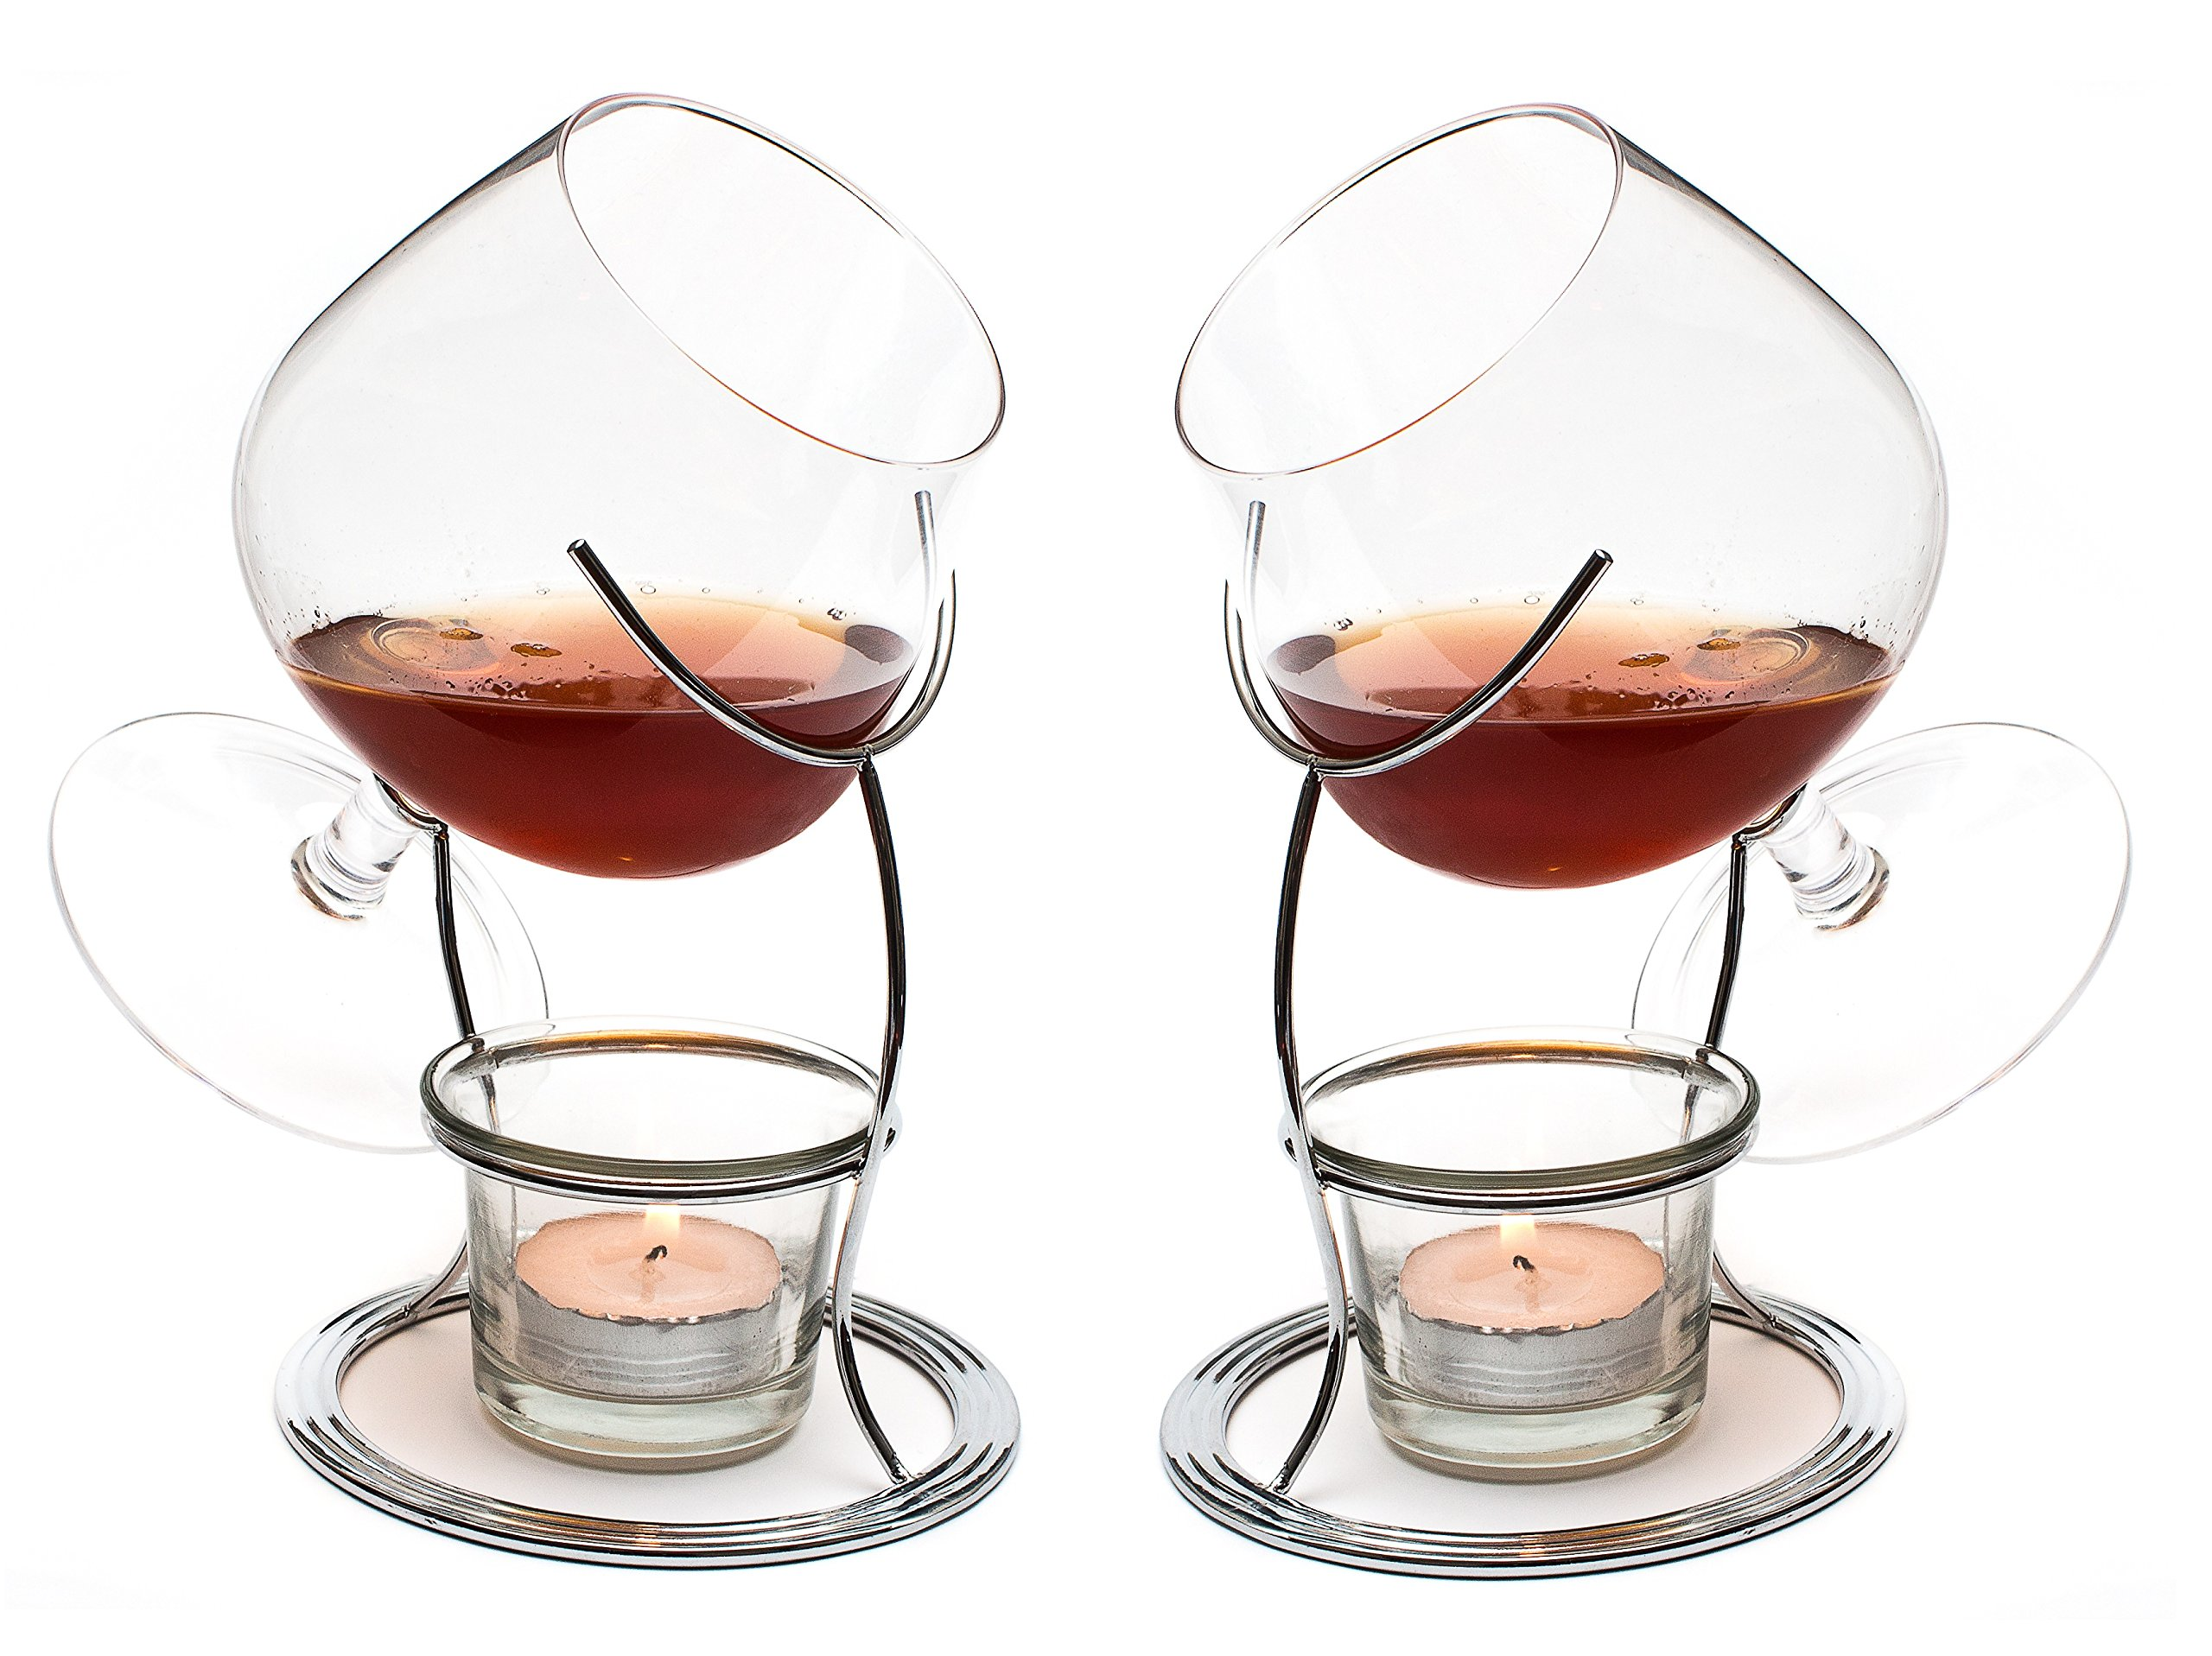 CKB Ltd Set Of 2 Brandy & Cognac Snifter Warmer Glasses Stand Gift Set With Tealight Candle & Crome Holder - Drinking Double Pack Set